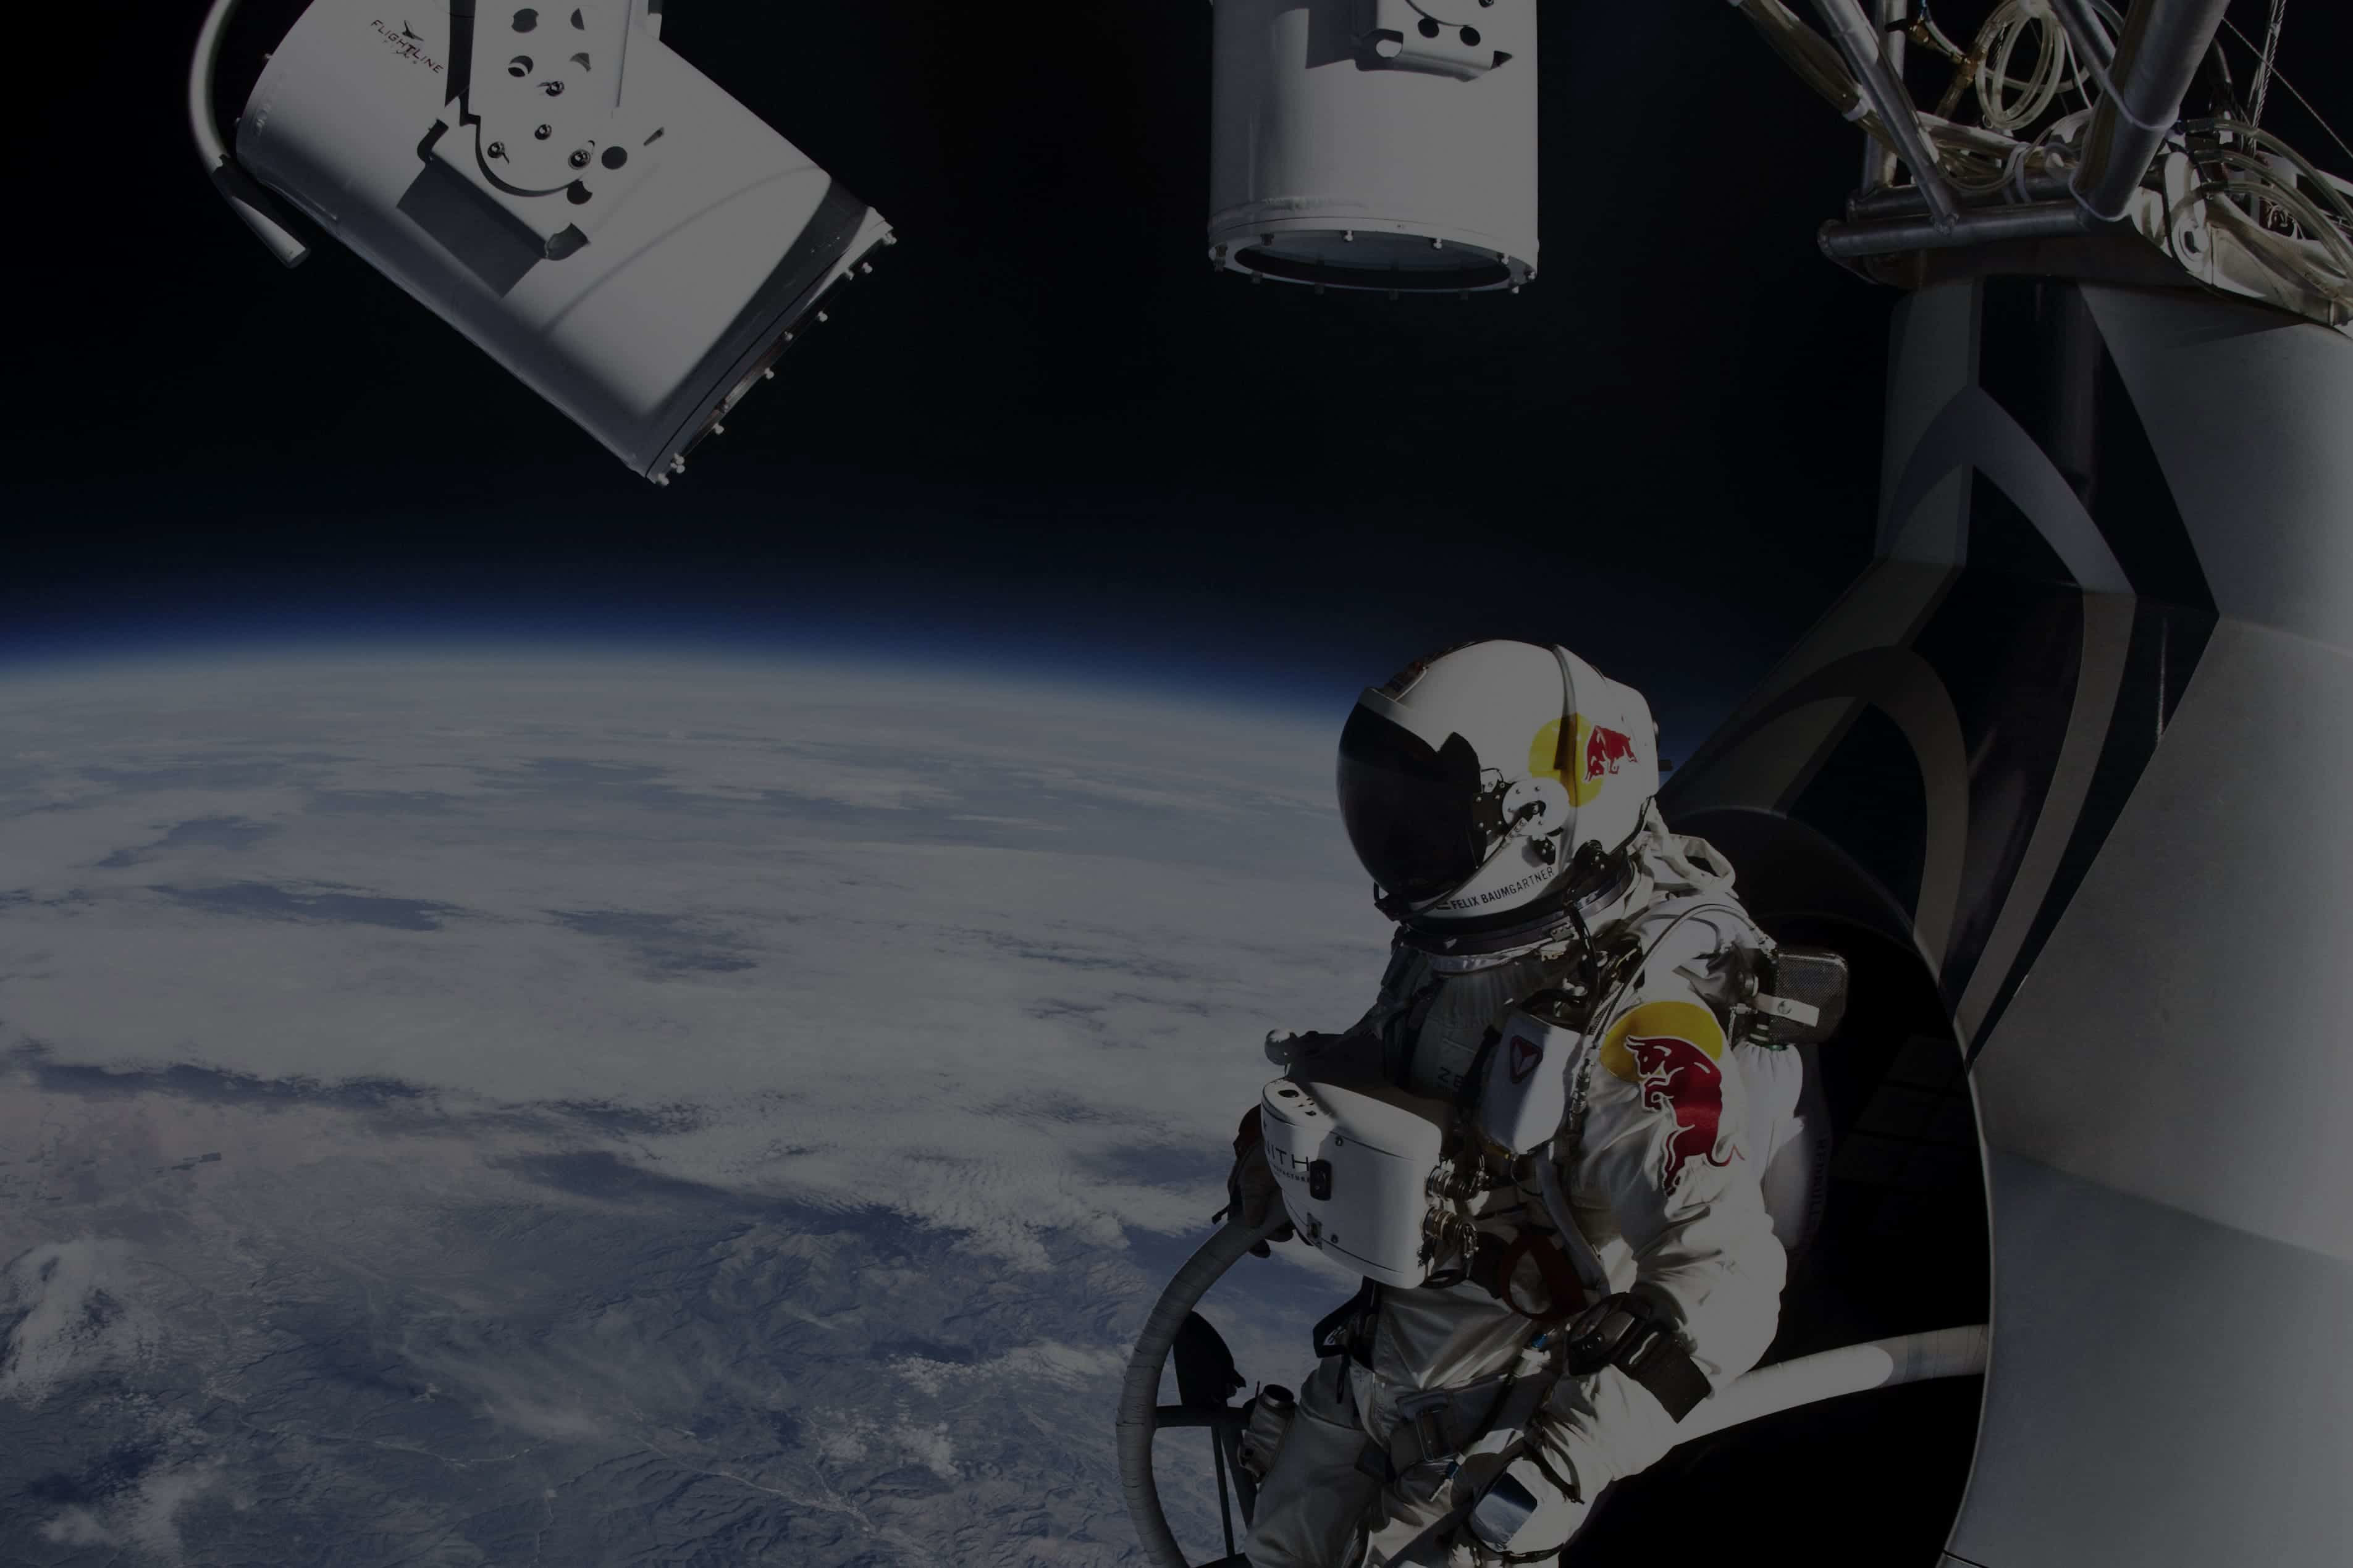 How Red Bull's 'Stratos' Space Jump Made Headlines From 120,000 Feet